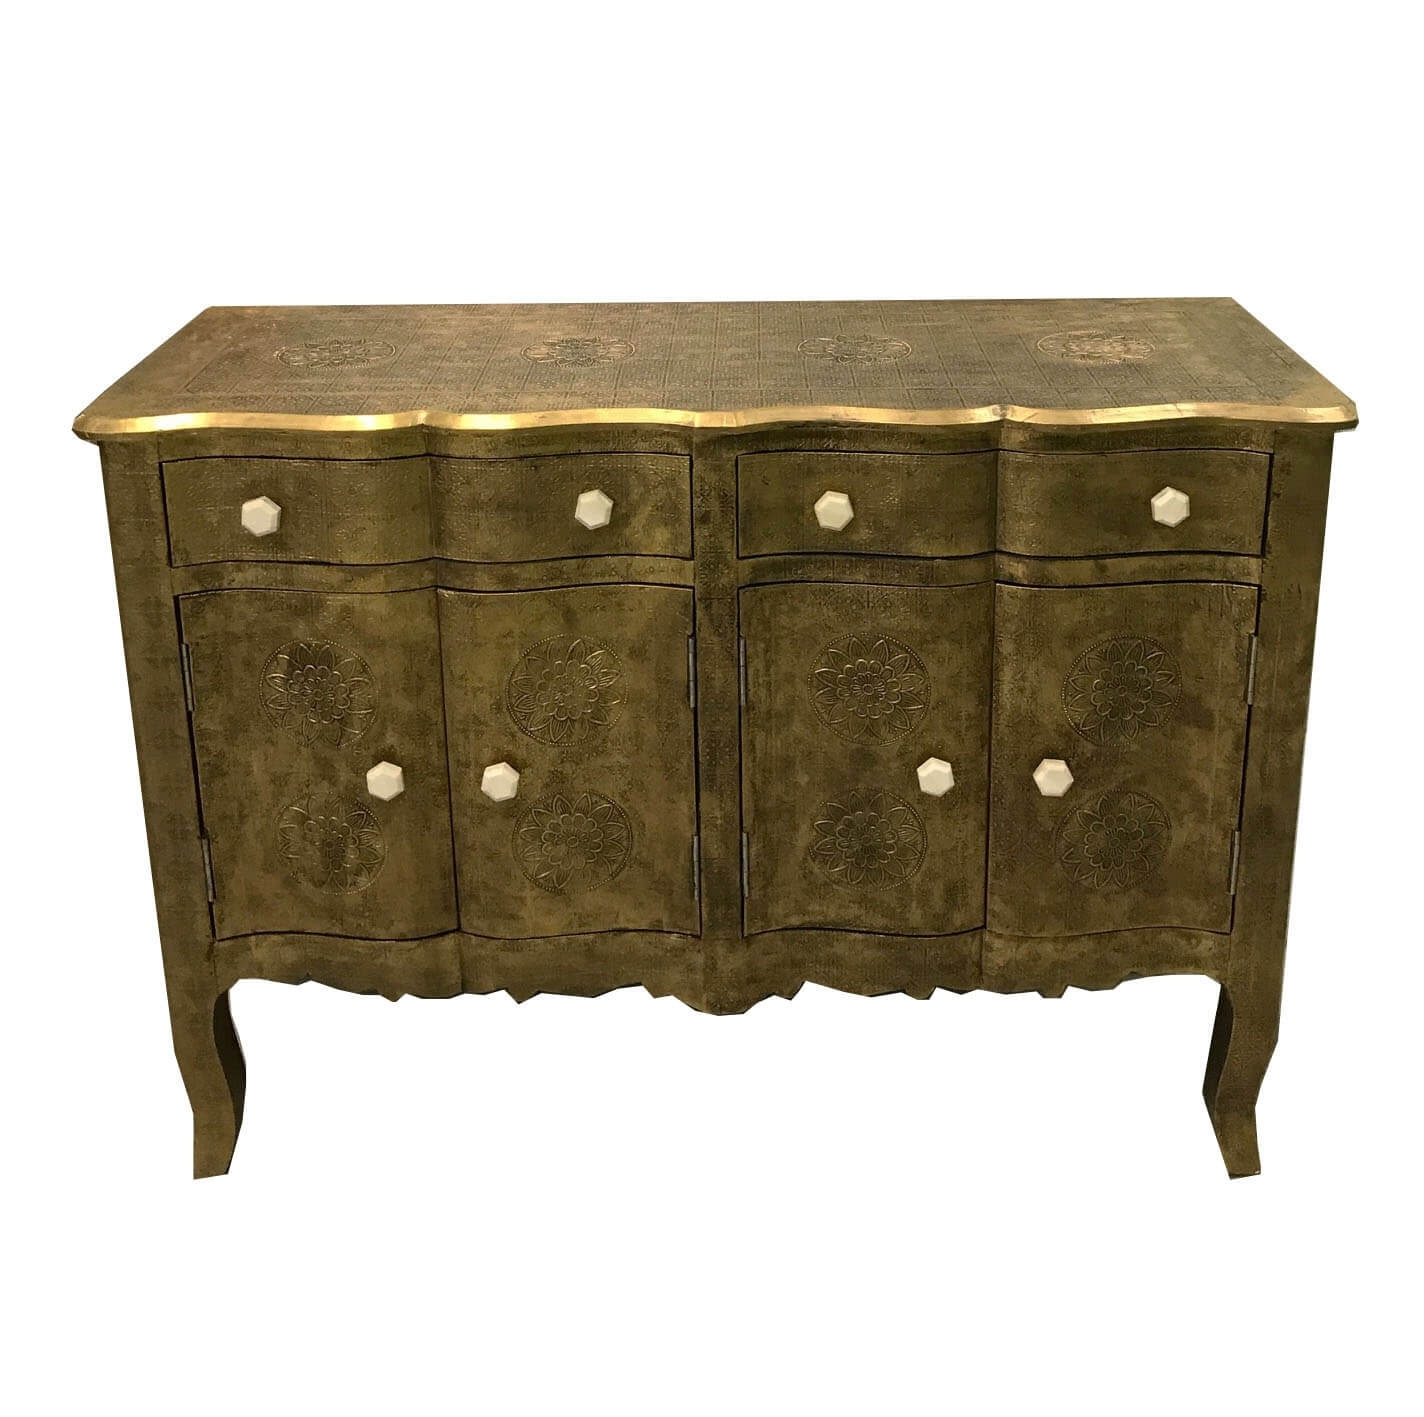 Antique Brass Embossed Wave Fronted Sideboard | Iris Furnishing with Open Shelf Brass 4-Drawer Sideboards (Image 2 of 30)